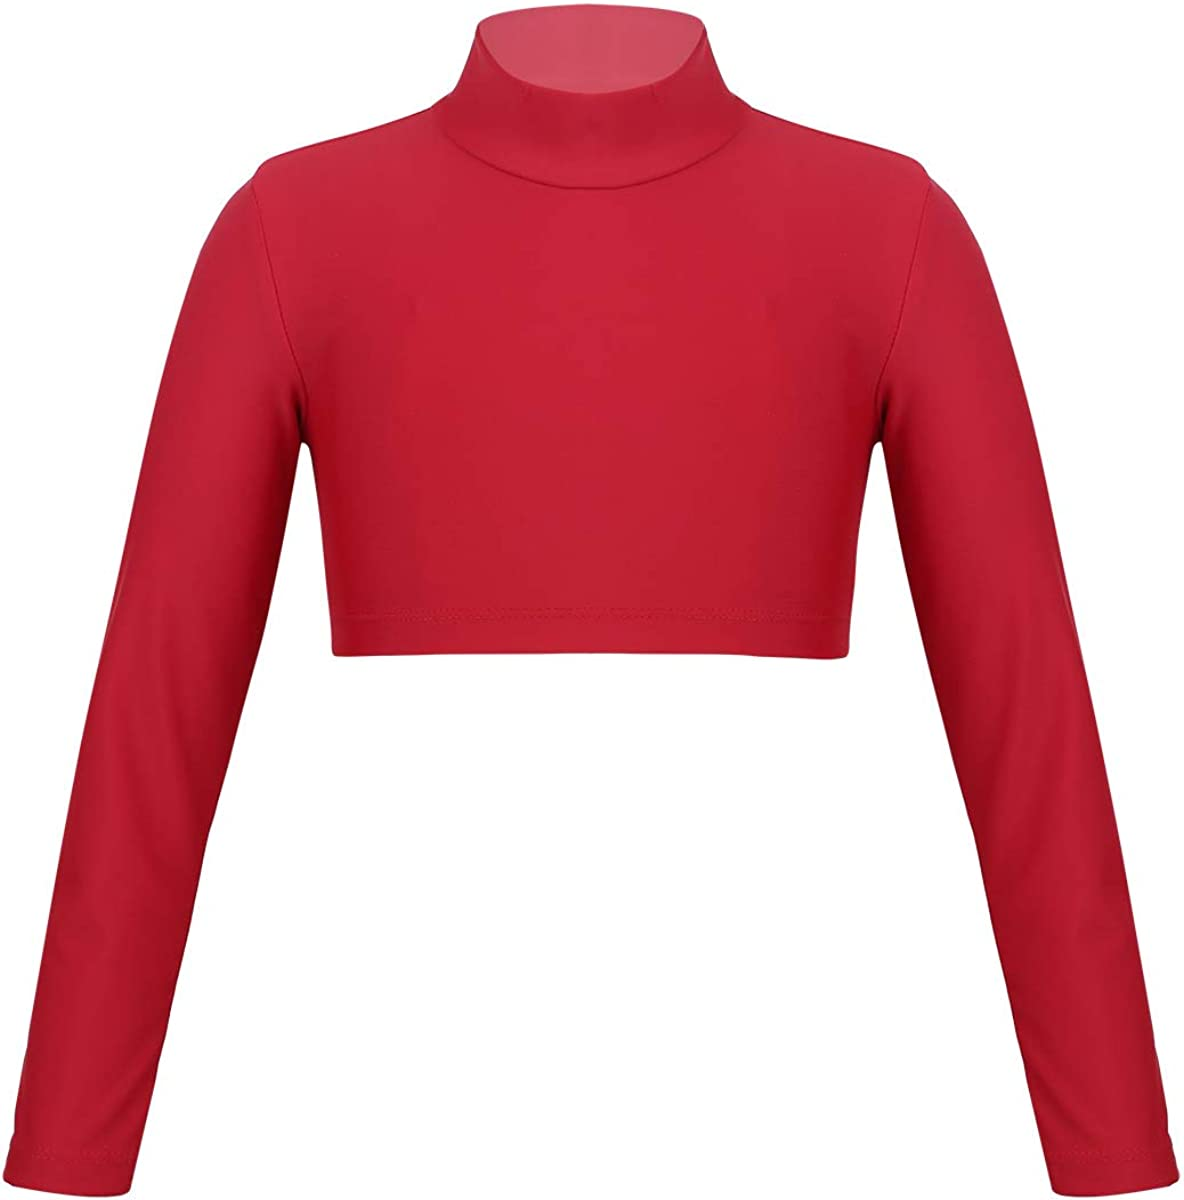 Kaerm Kids Girls Sleeveles Criss Cross Back Tops Crop Tanks for Ballet Dance Athletic Stage Perfomance Wear Red Long Sleeves 10